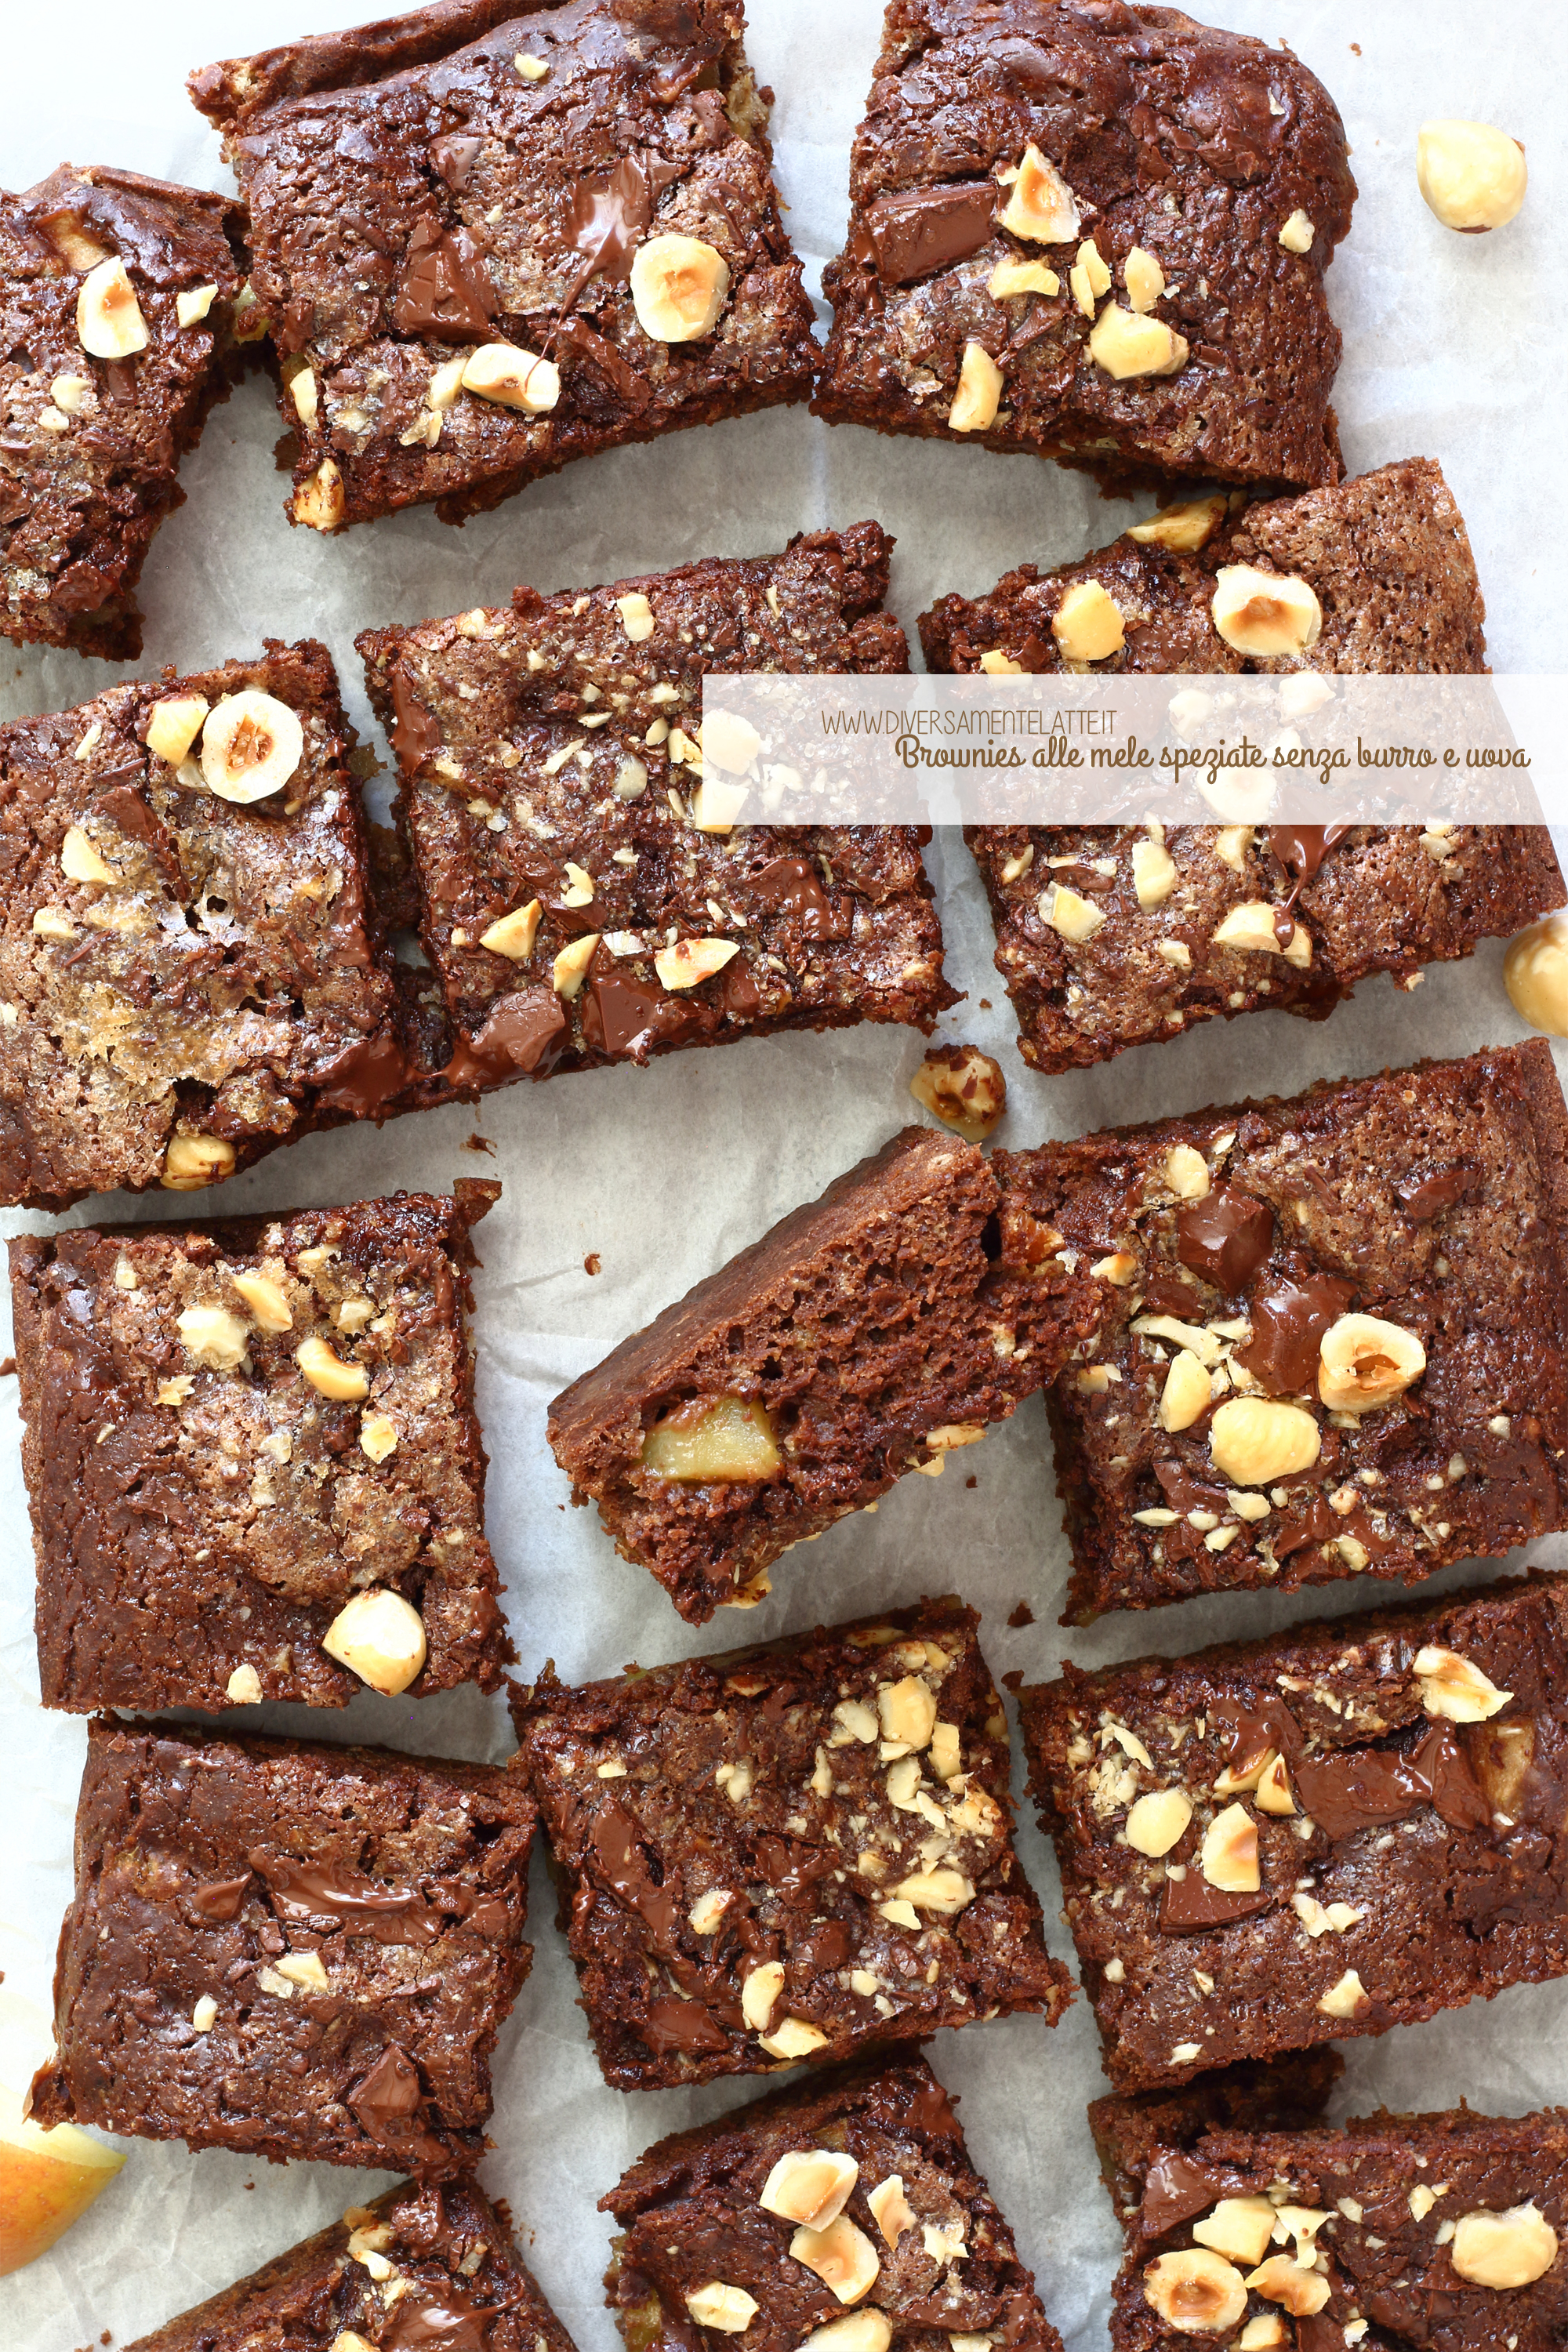 brownies alle mele speziate vegan